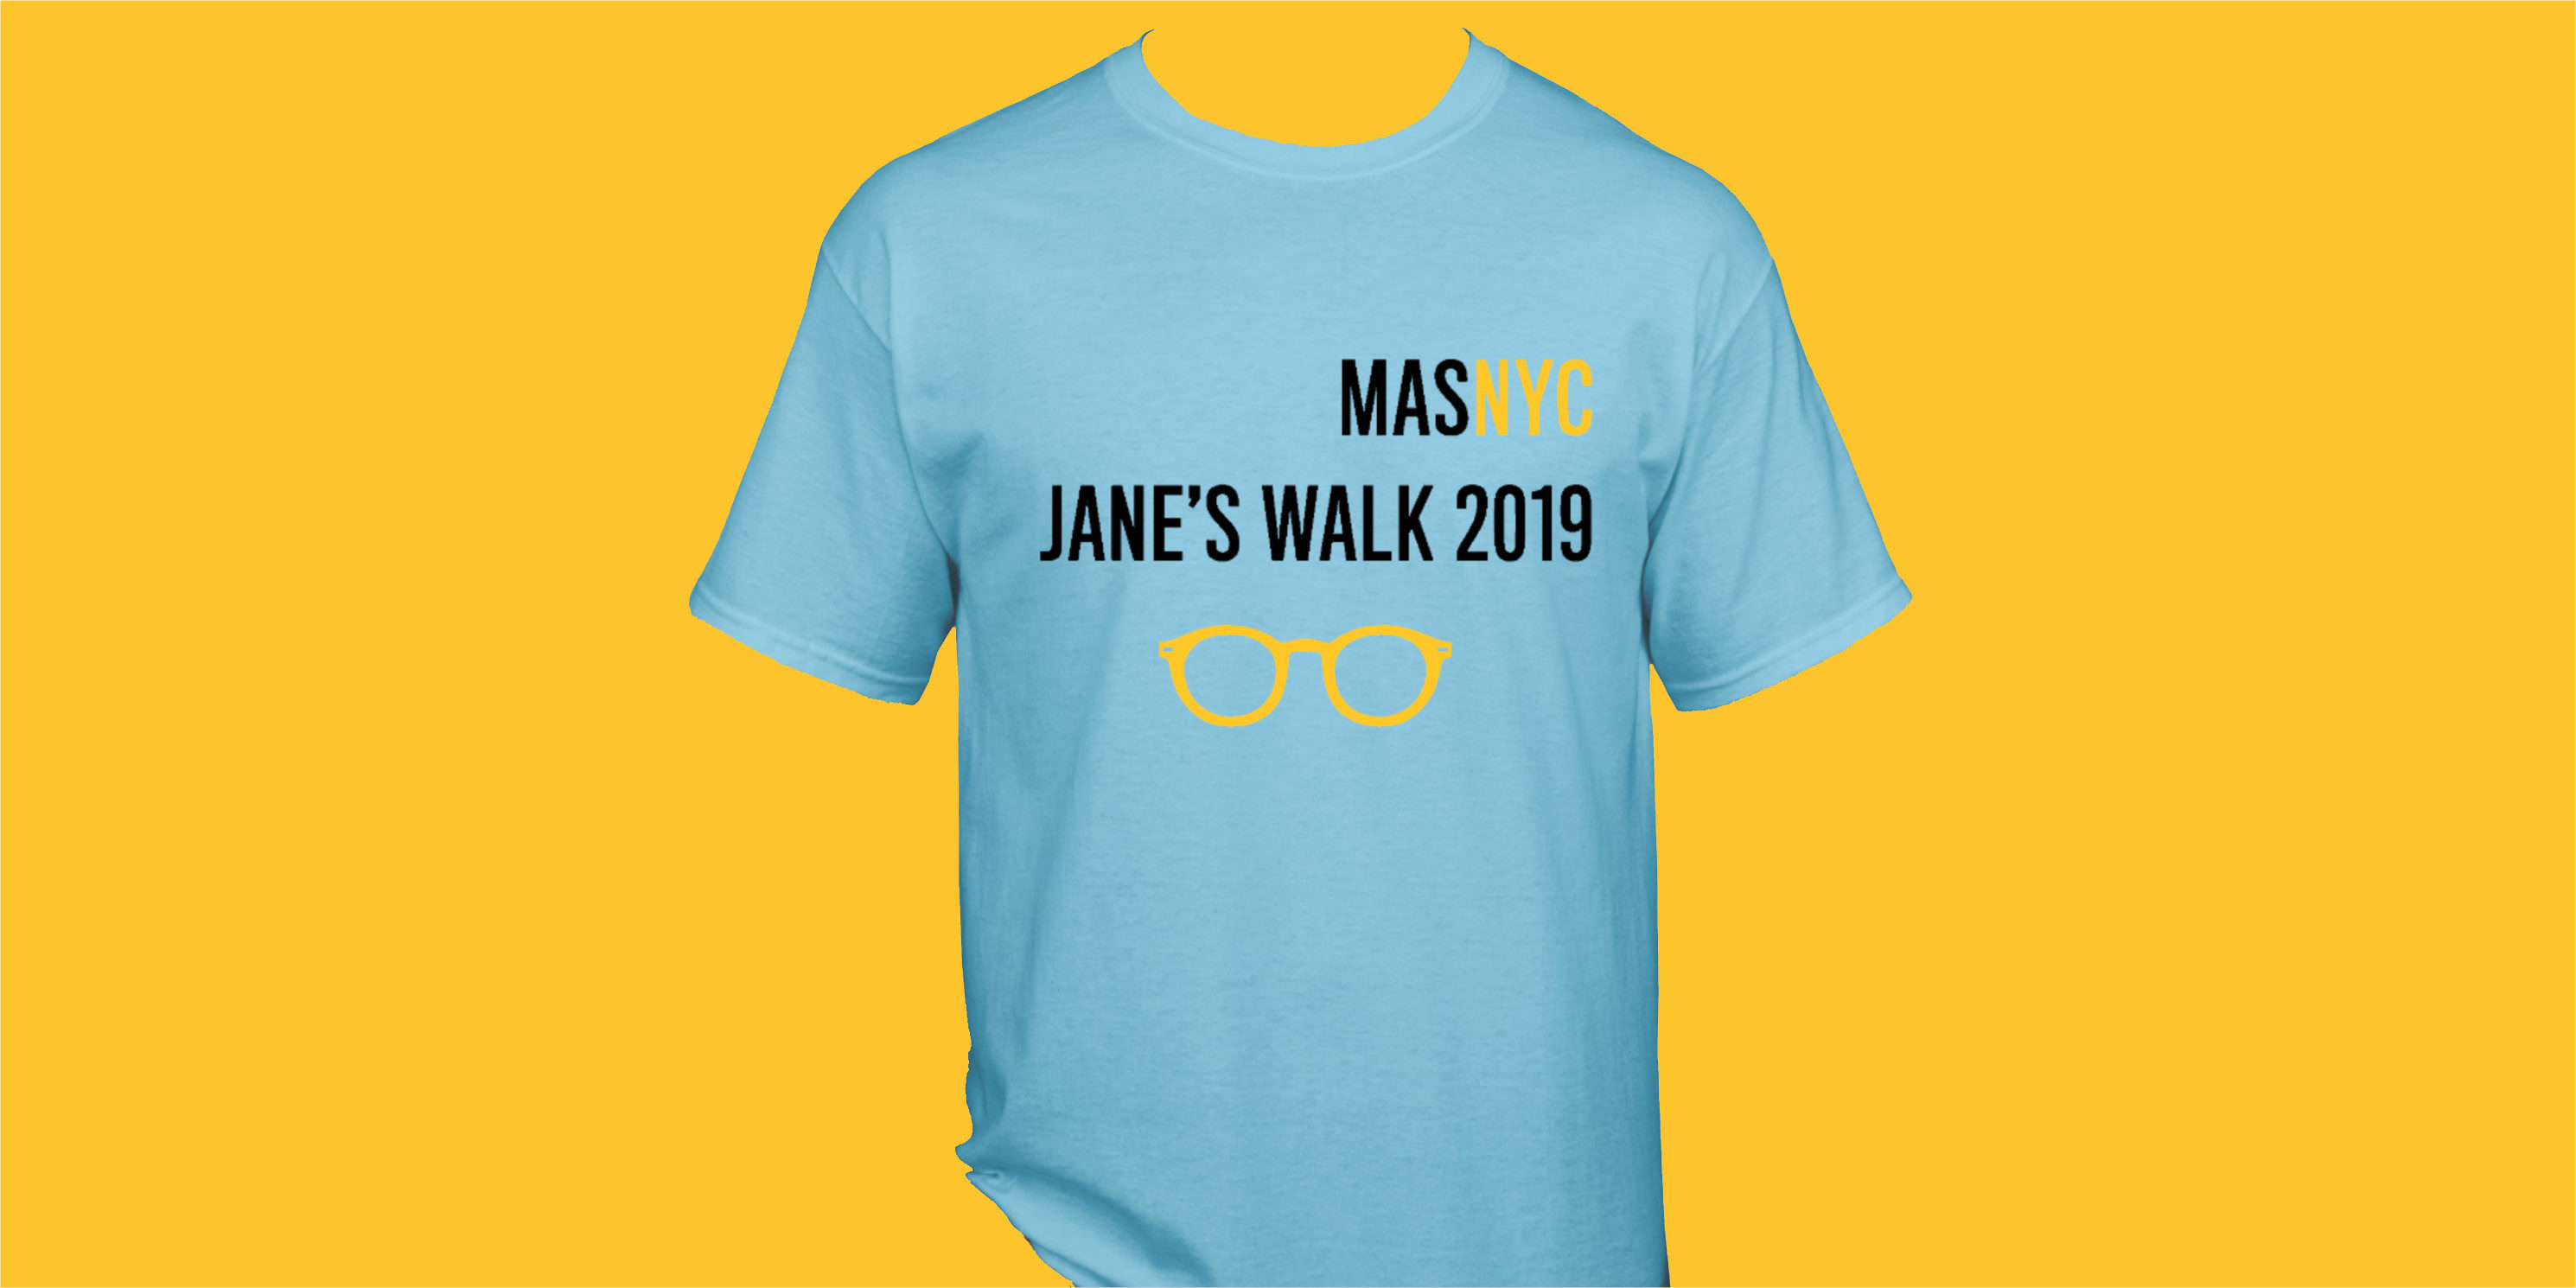 Jane's Walk T-shirt from 2019